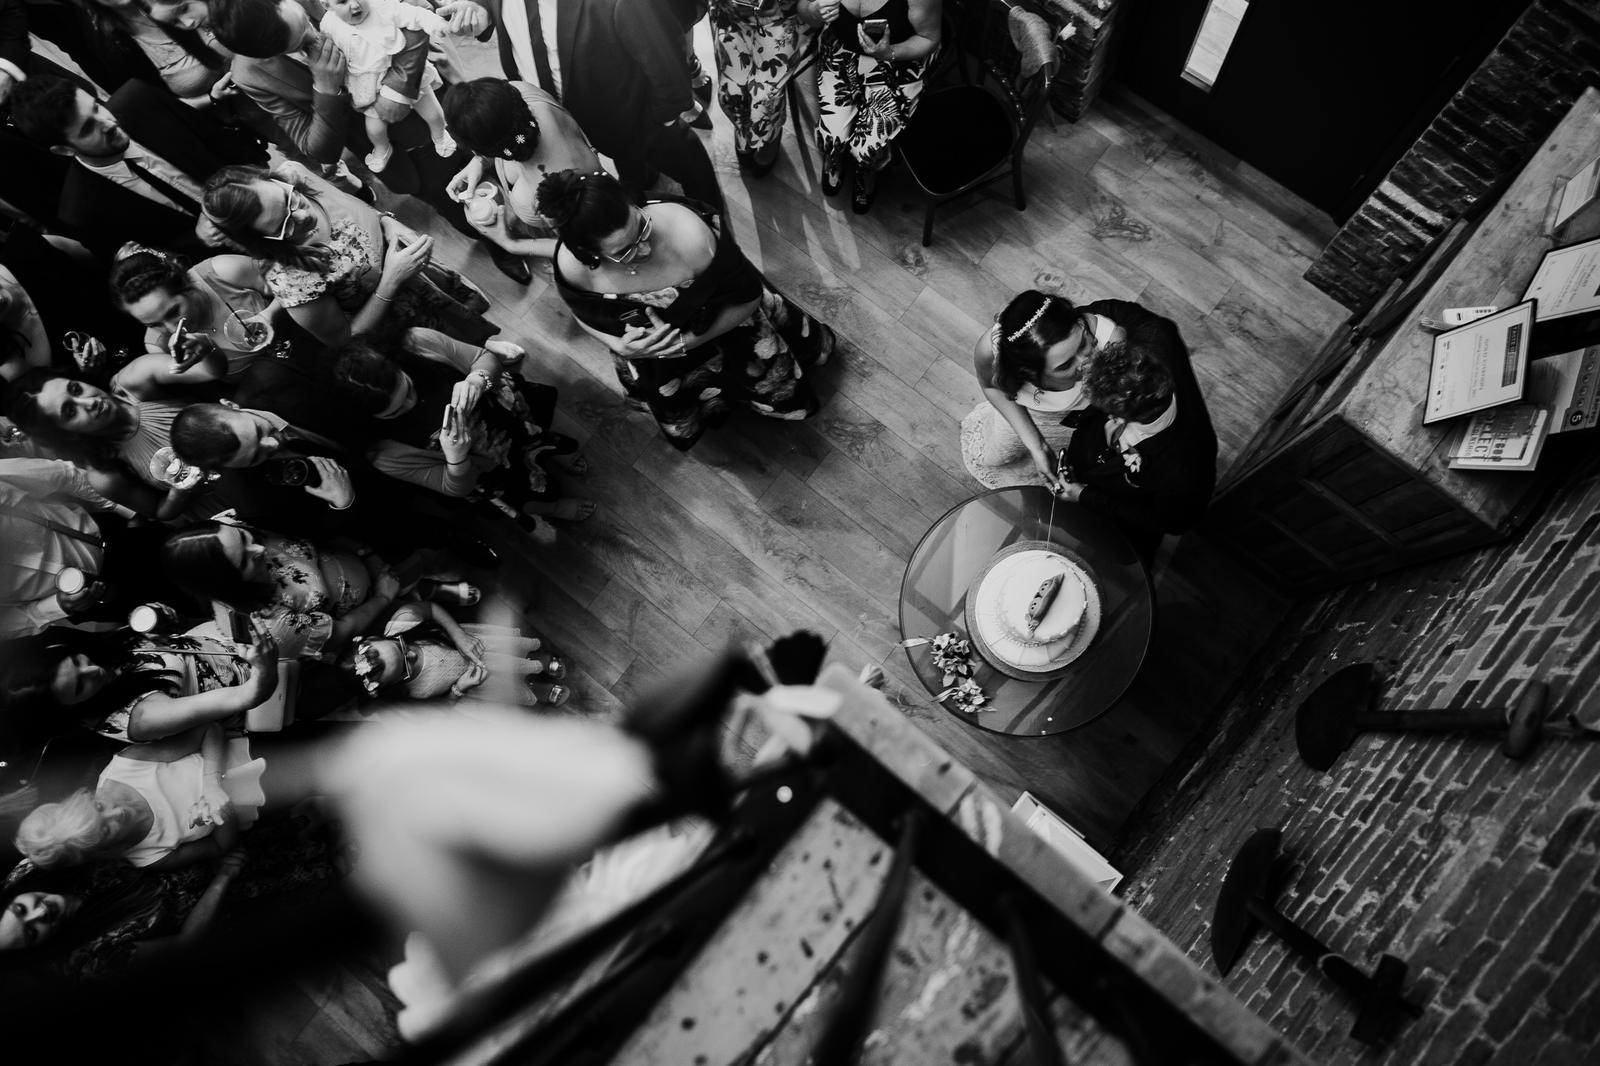 Documentary image of a cake cut at a wedding from above